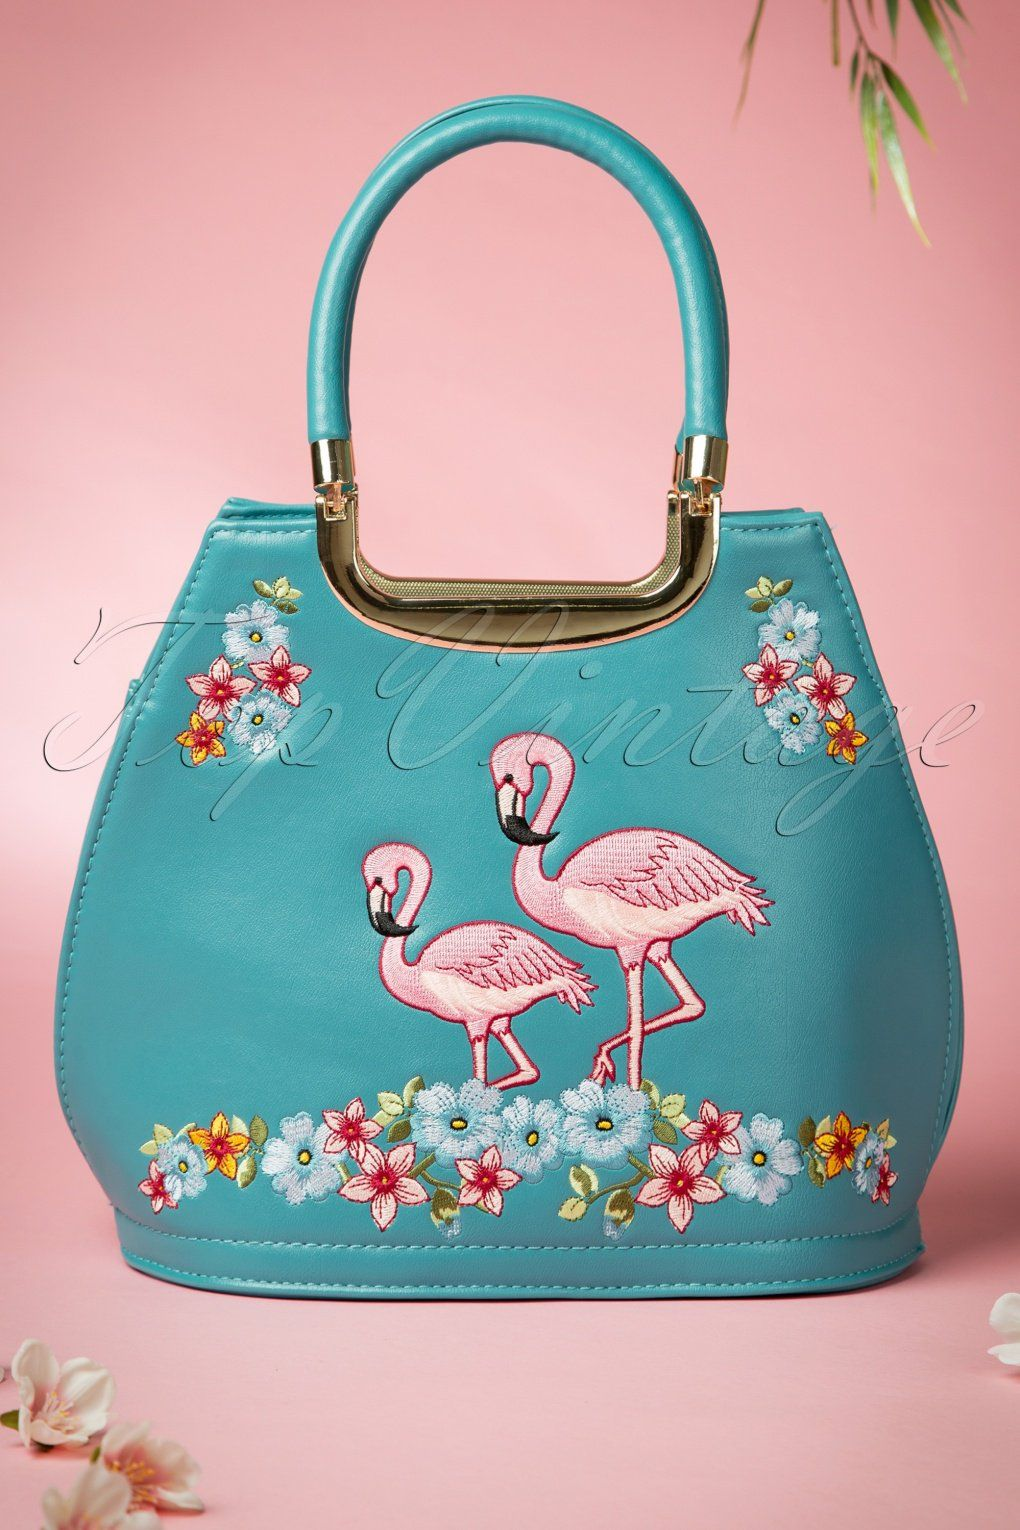 This 50s Flamingo Handbag In Blue By Banned Is A Beautiful Elegant Bag With Colourful Embroidery Ious Made From Sy Nice Quality